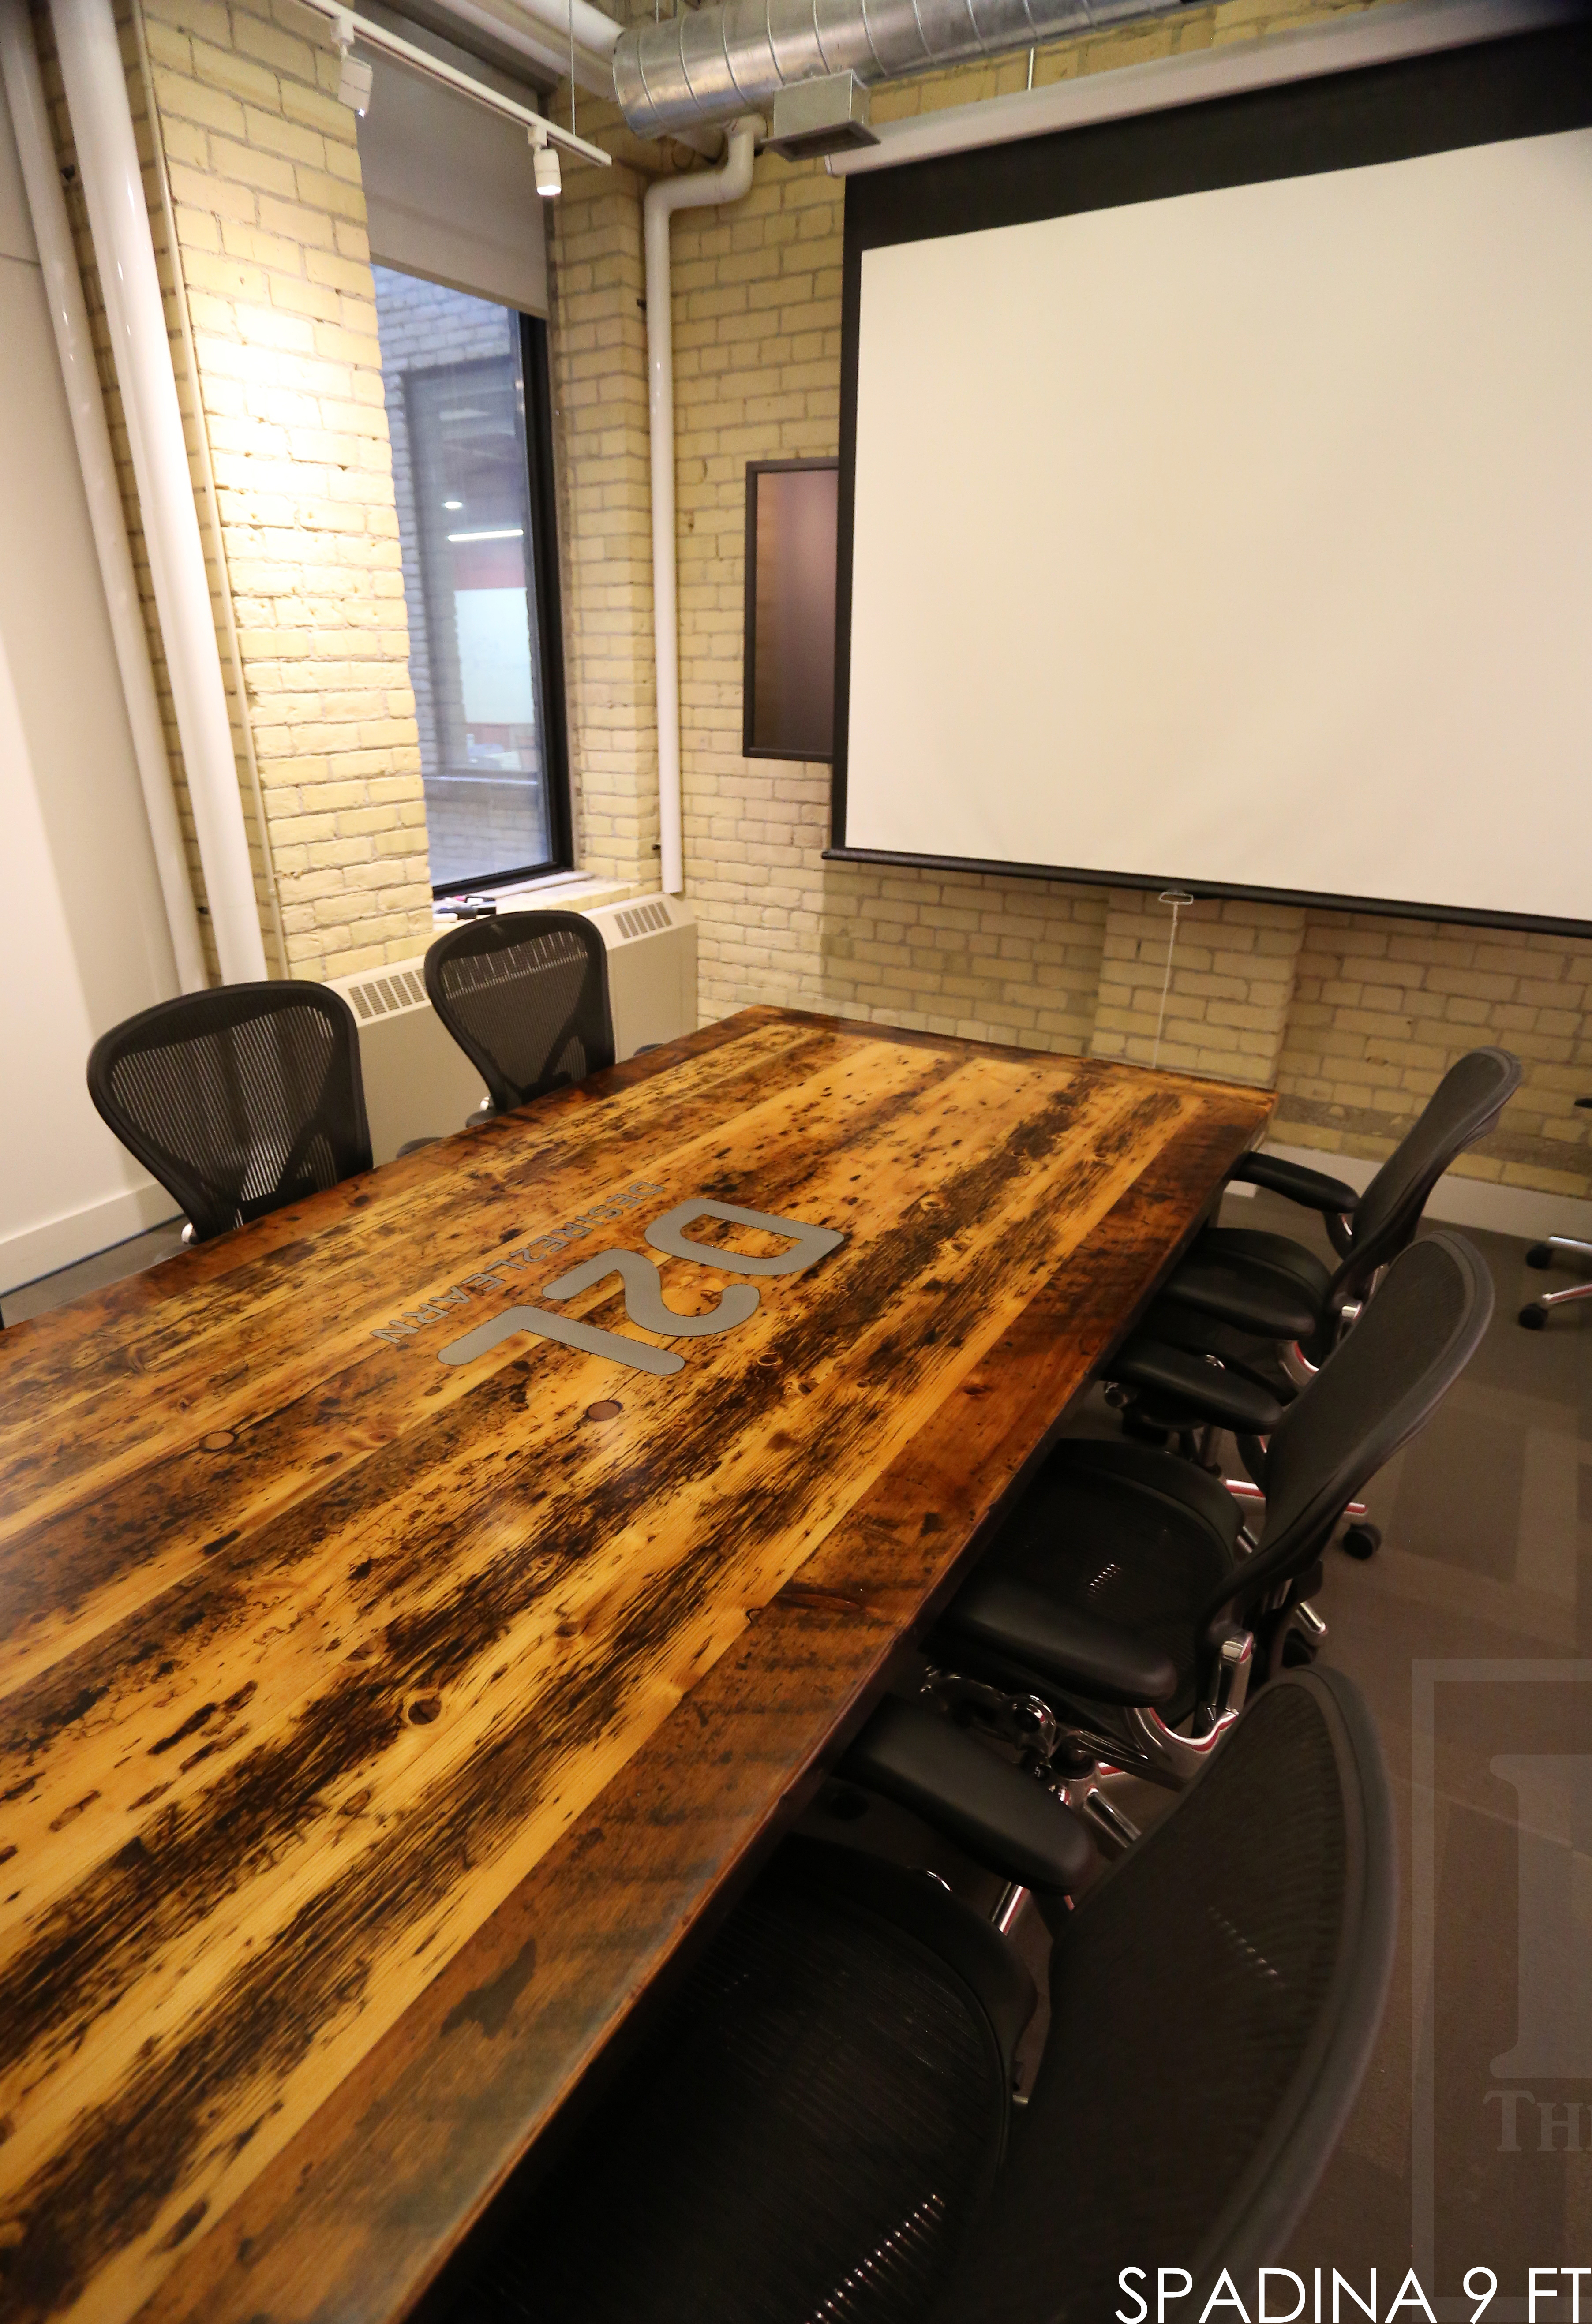 reclaimed wood tables Ontario, epoxy, boardroom table, resin, recycled wood furniture, conference table, reclaimed wood conference table, modern tables Ontario